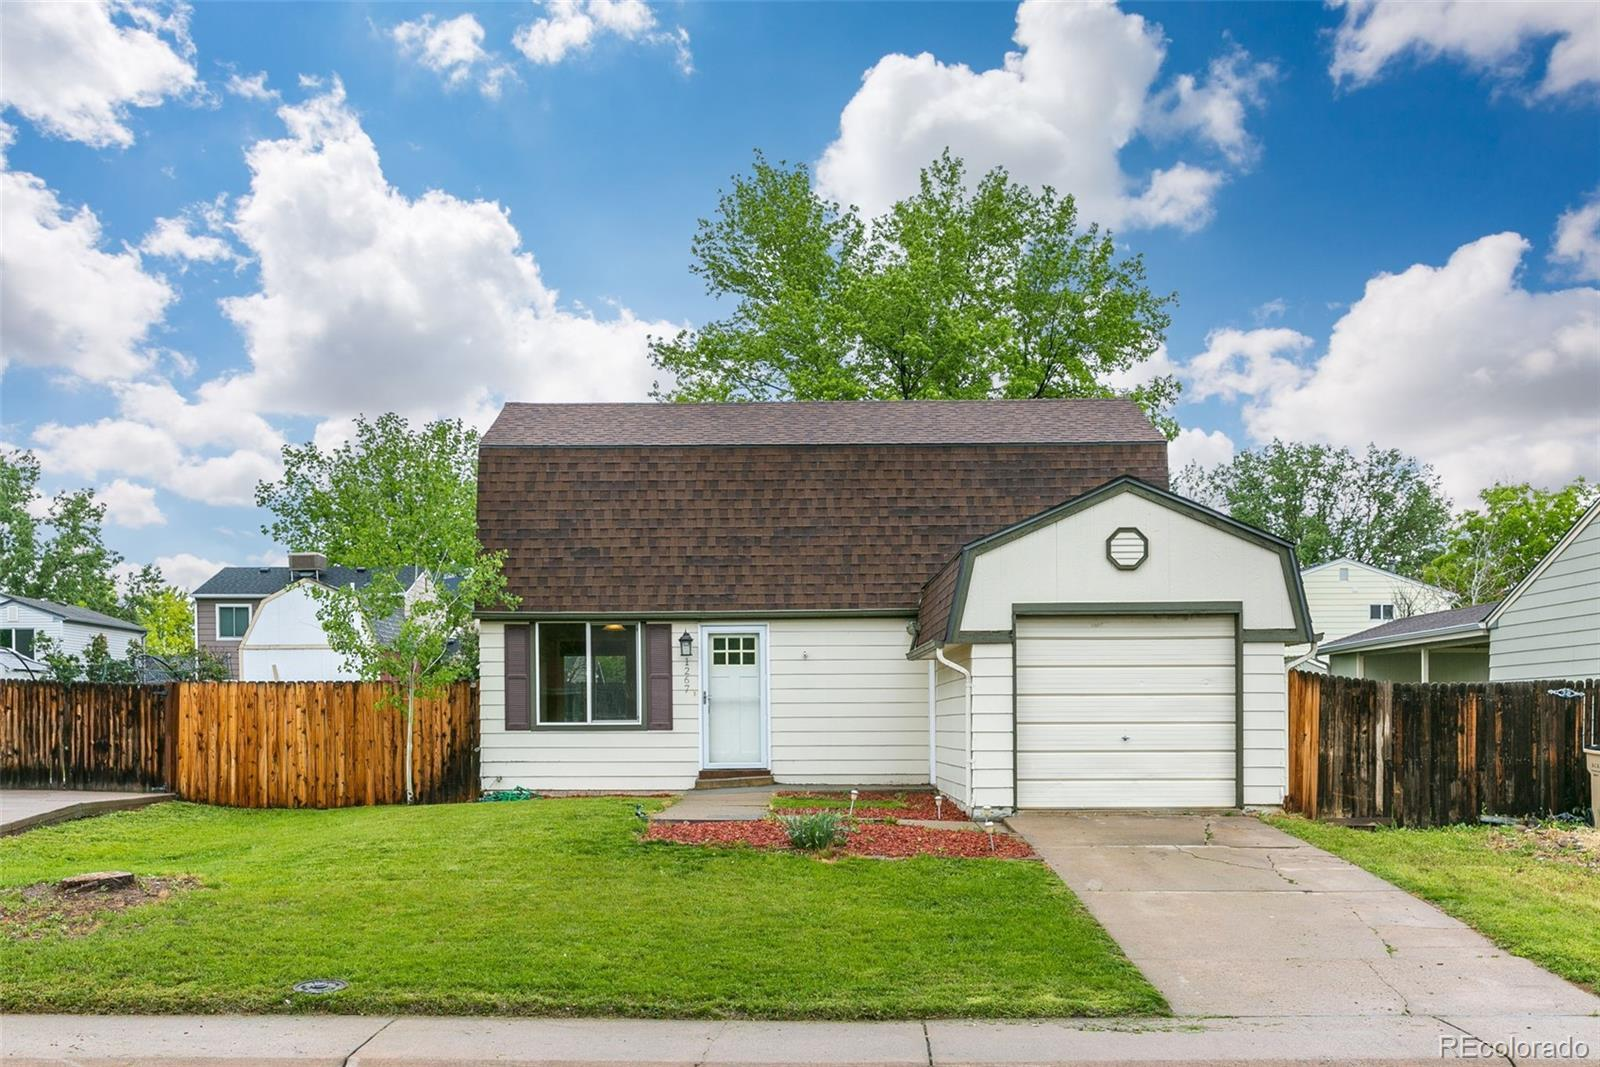 1267 W 135th Place, Westminster, CO 80234 - #: 6969034